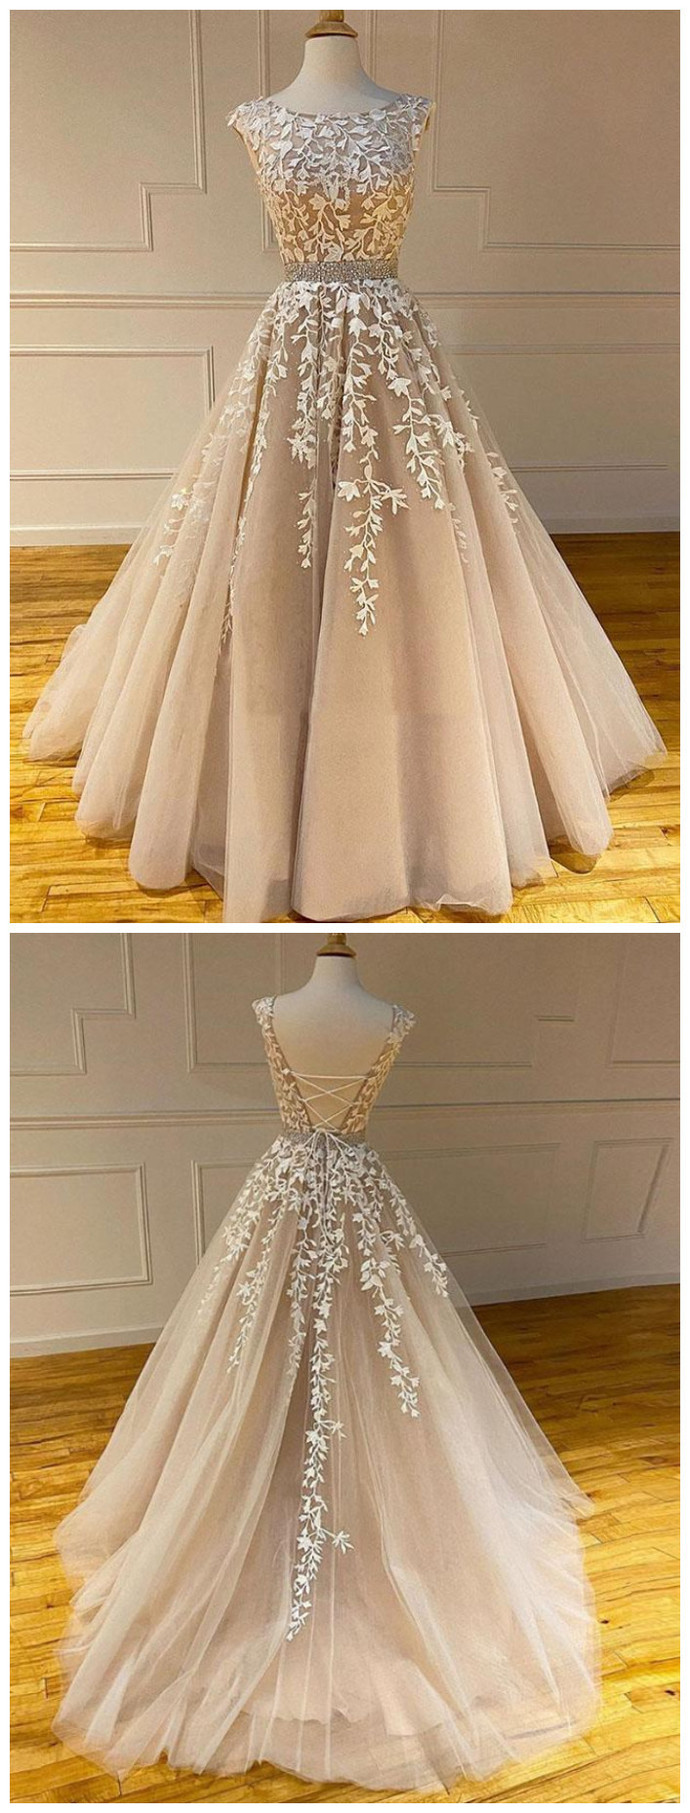 Princess Tulle Champagne Backless Beads Ball Gown Prom Dress, Appliques